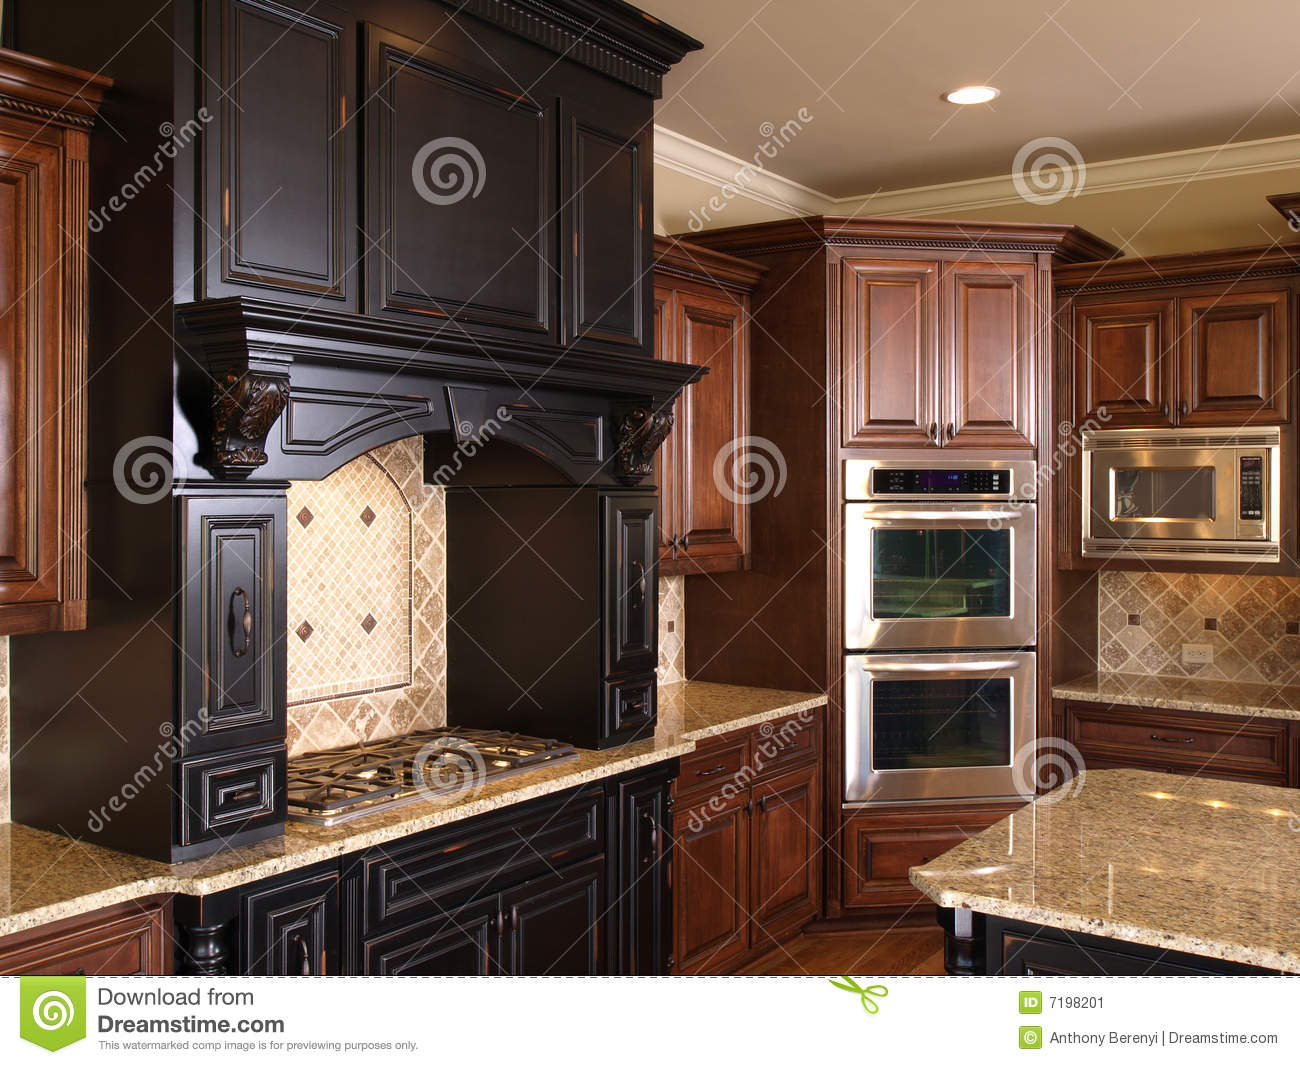 Luxury center island kitchen burners oven stock image for Luxury oven